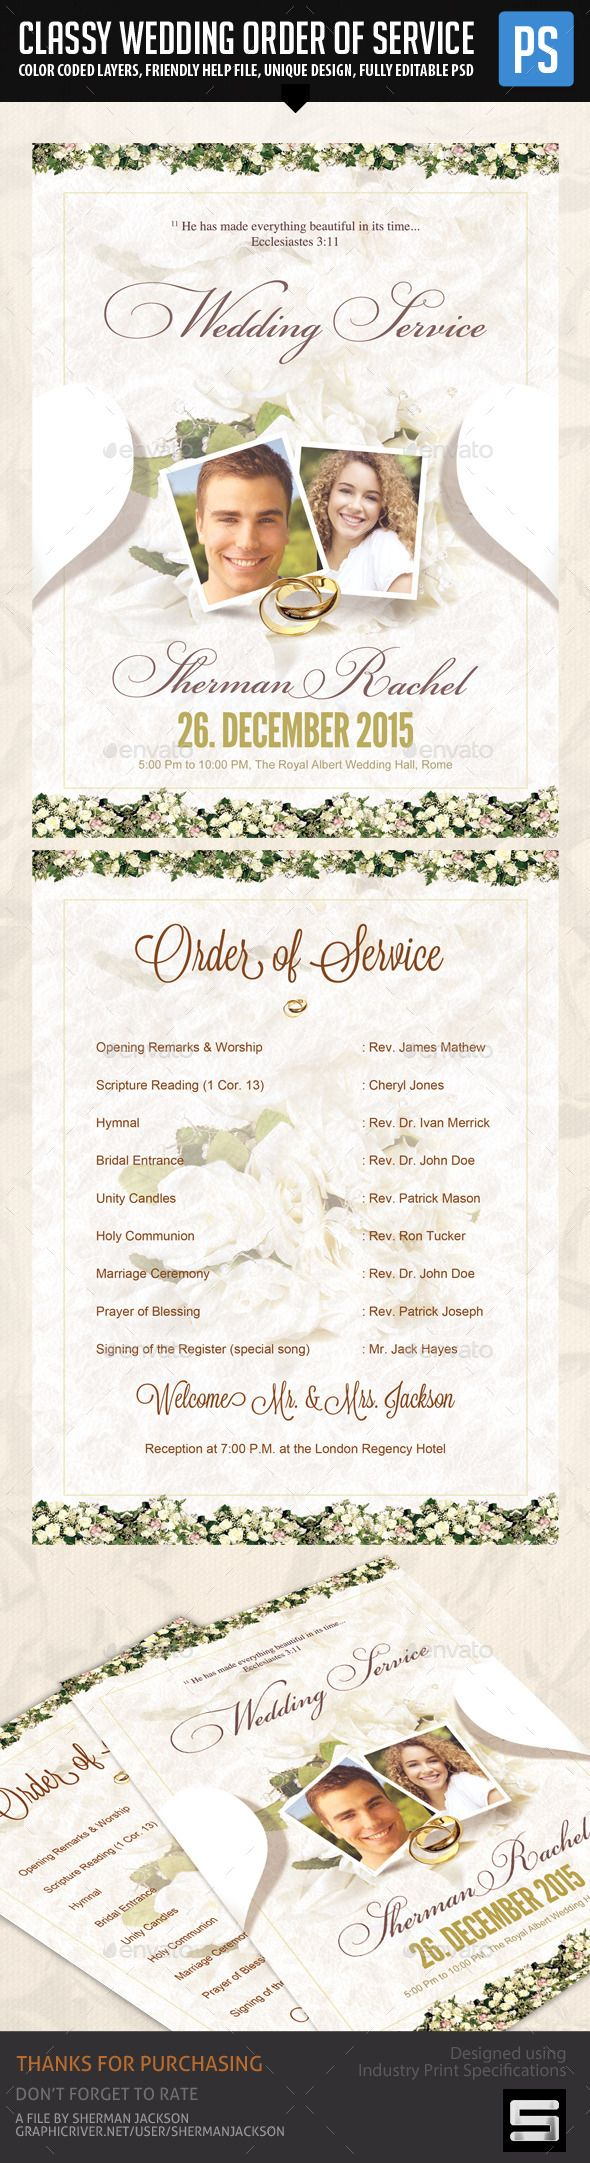 Cly Wedding Order Of Service Template